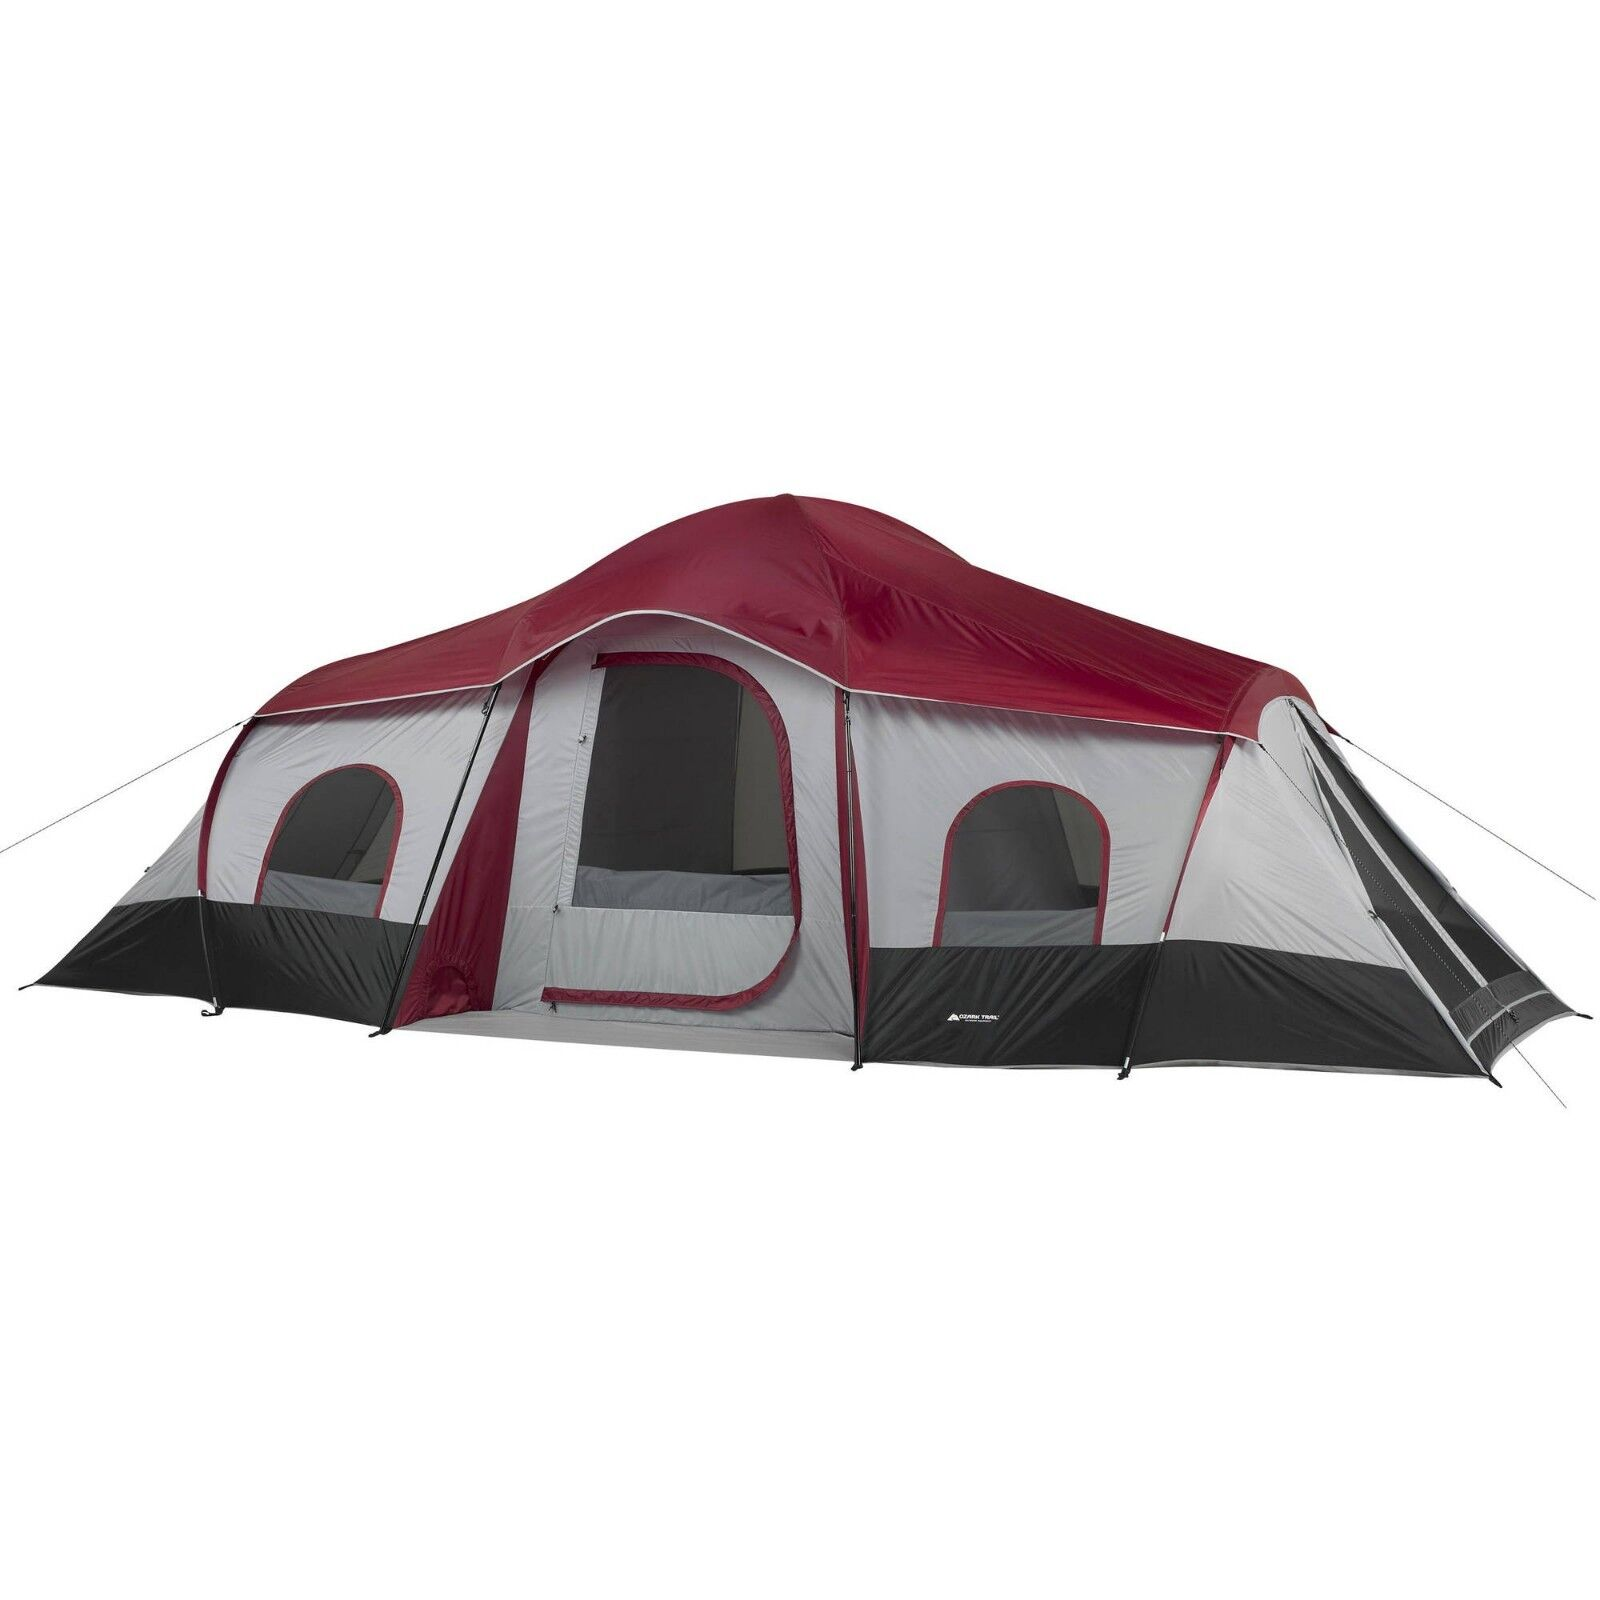 10 Person Tent 3 Room Lodge Cabin Family Tents Screened Shelter Camping Outdoor